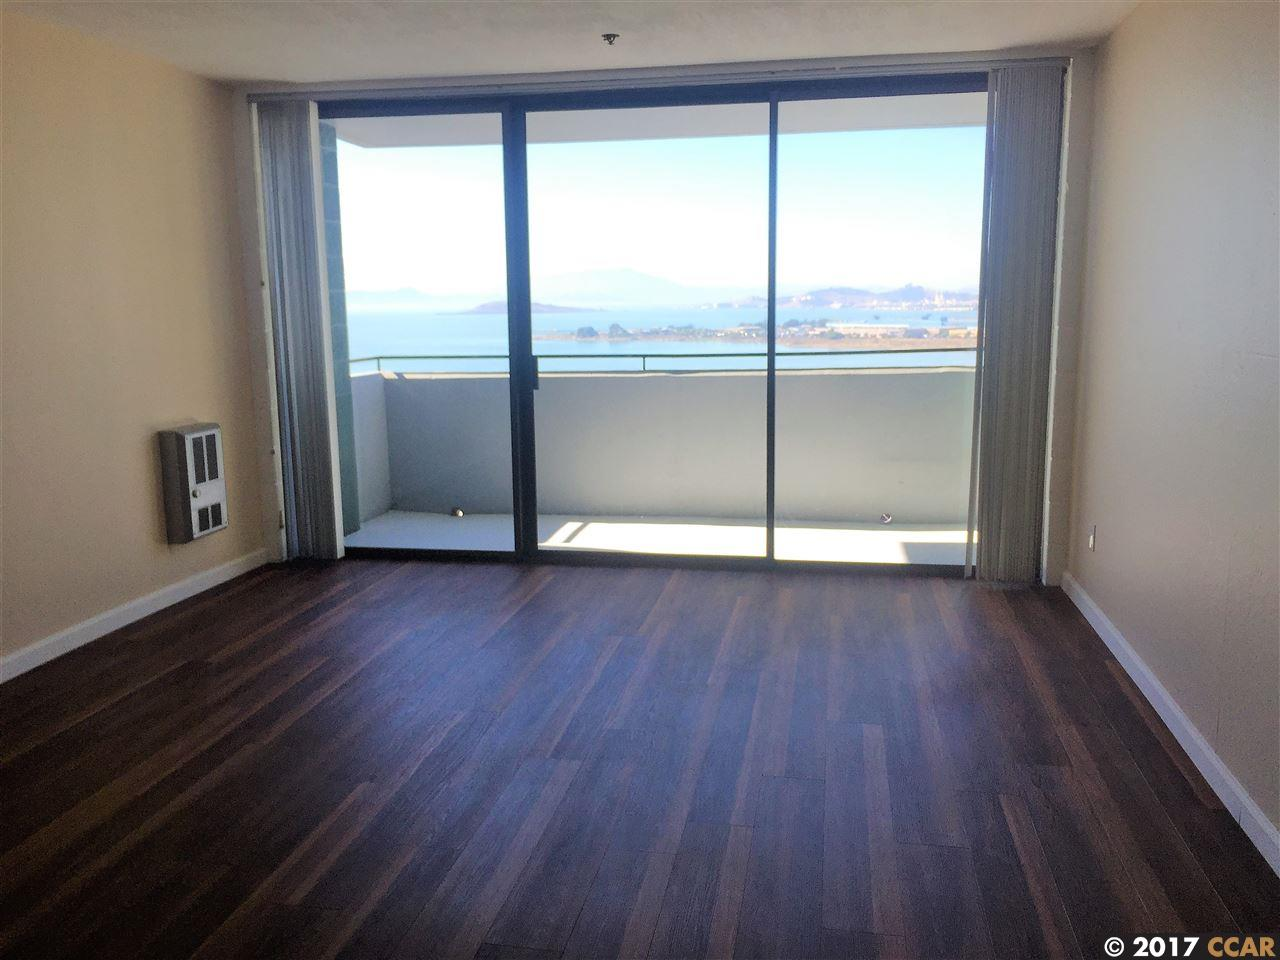 Condominium for Rent at 555 Pierce Street 555 Pierce Street Albany, California 94706 United States